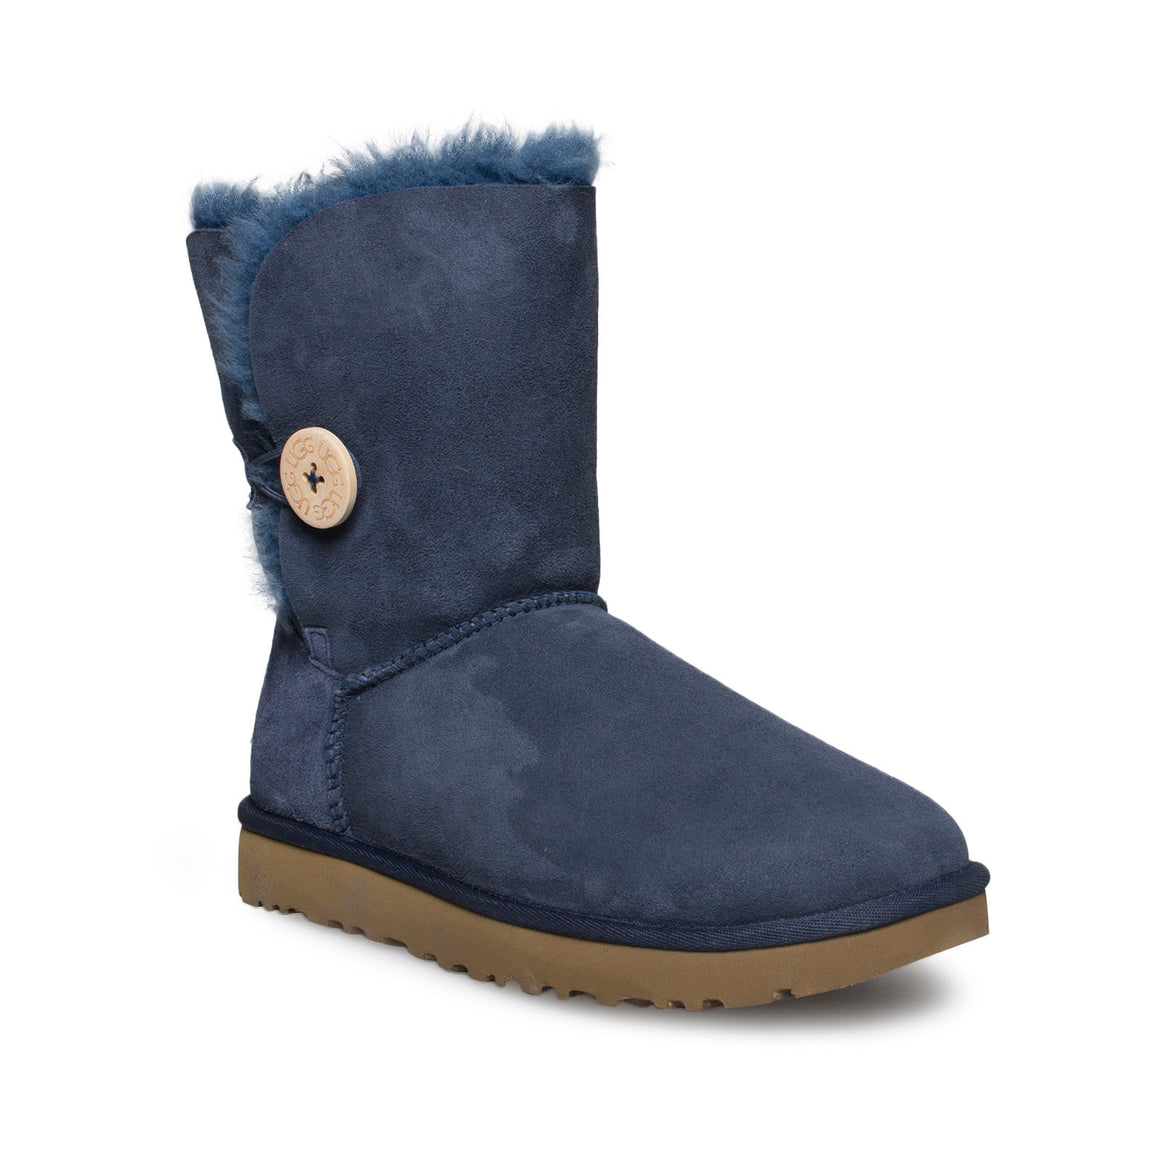 UGG Bailey Button II Navy Boots - Youth